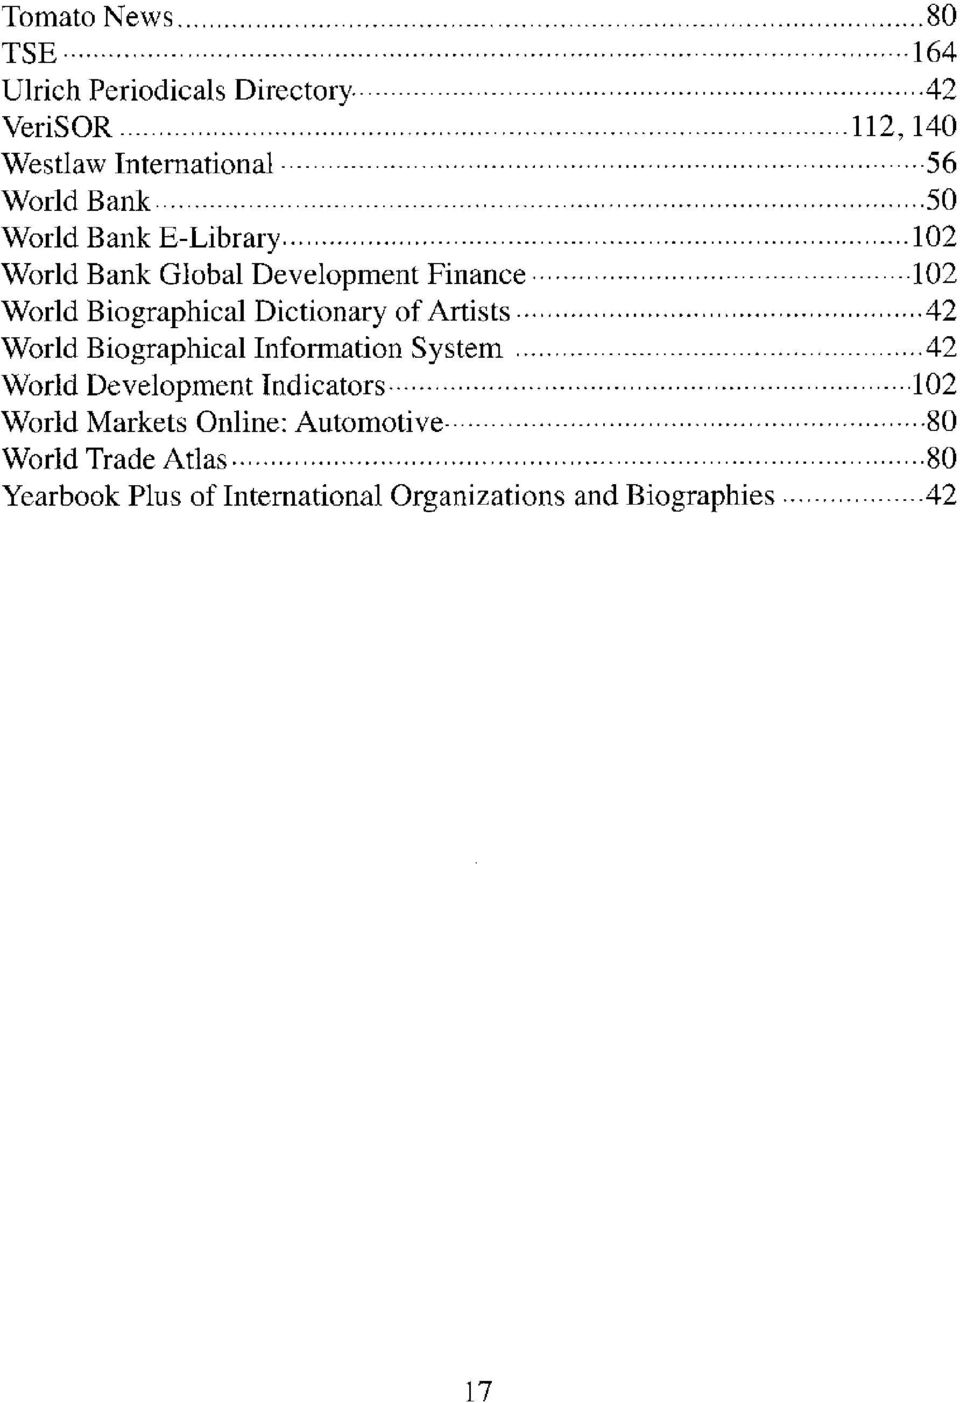 Development Finance 102 World Biographical Dictionary of Artists 42 World Biographical Information